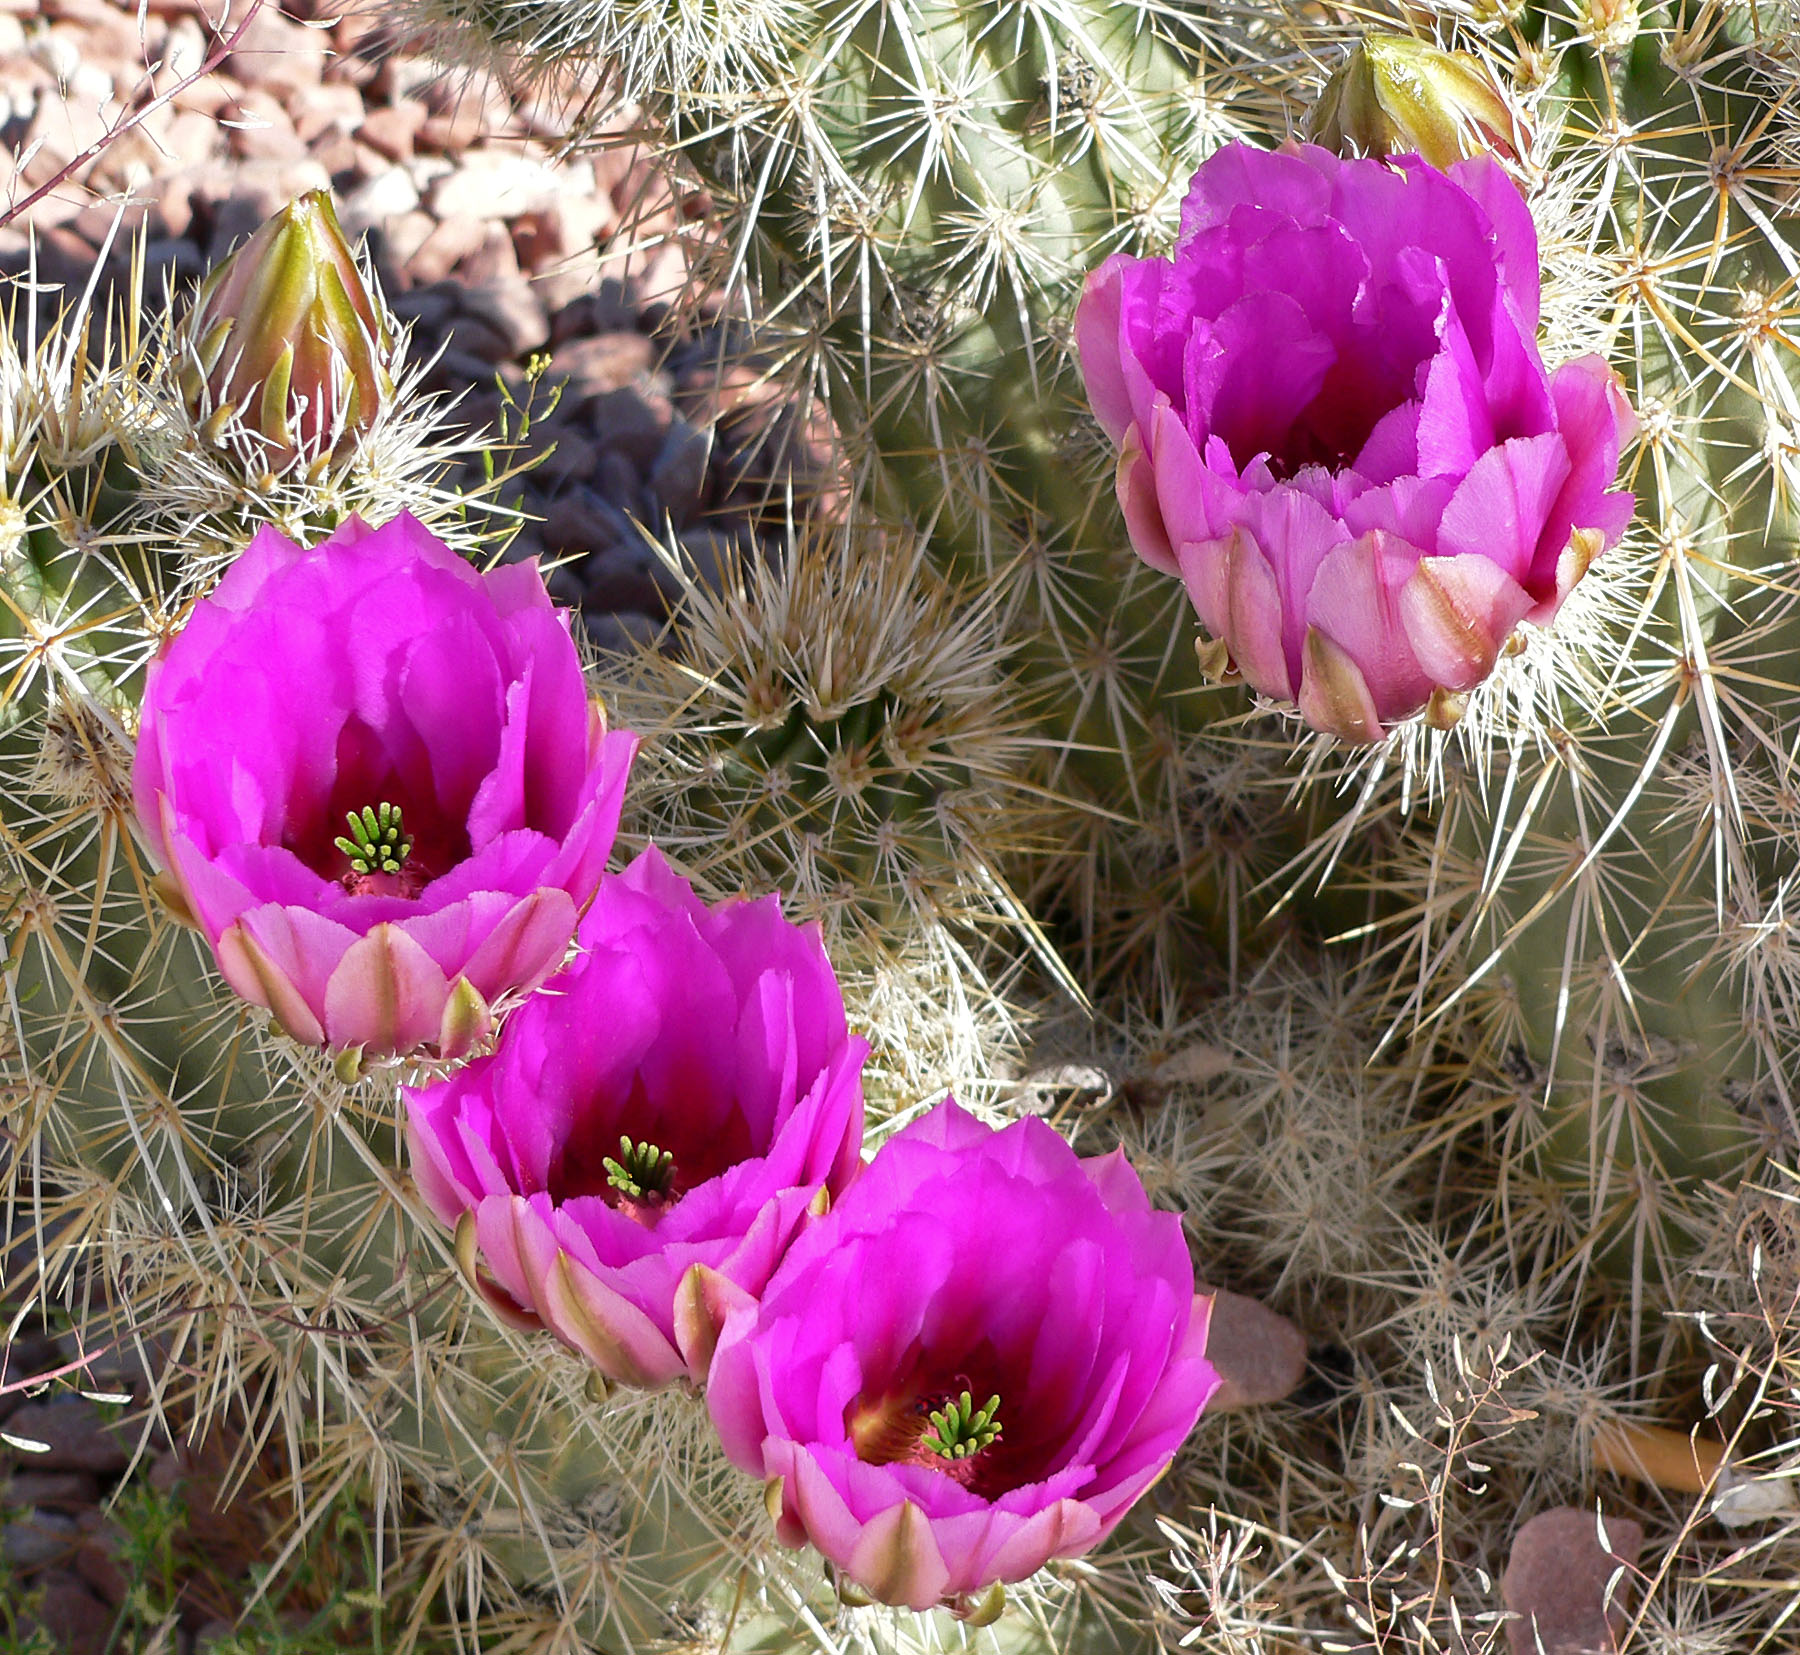 5 Echinocereus Engelmannii Seeds (Strawberry Hedgehog Cactus)